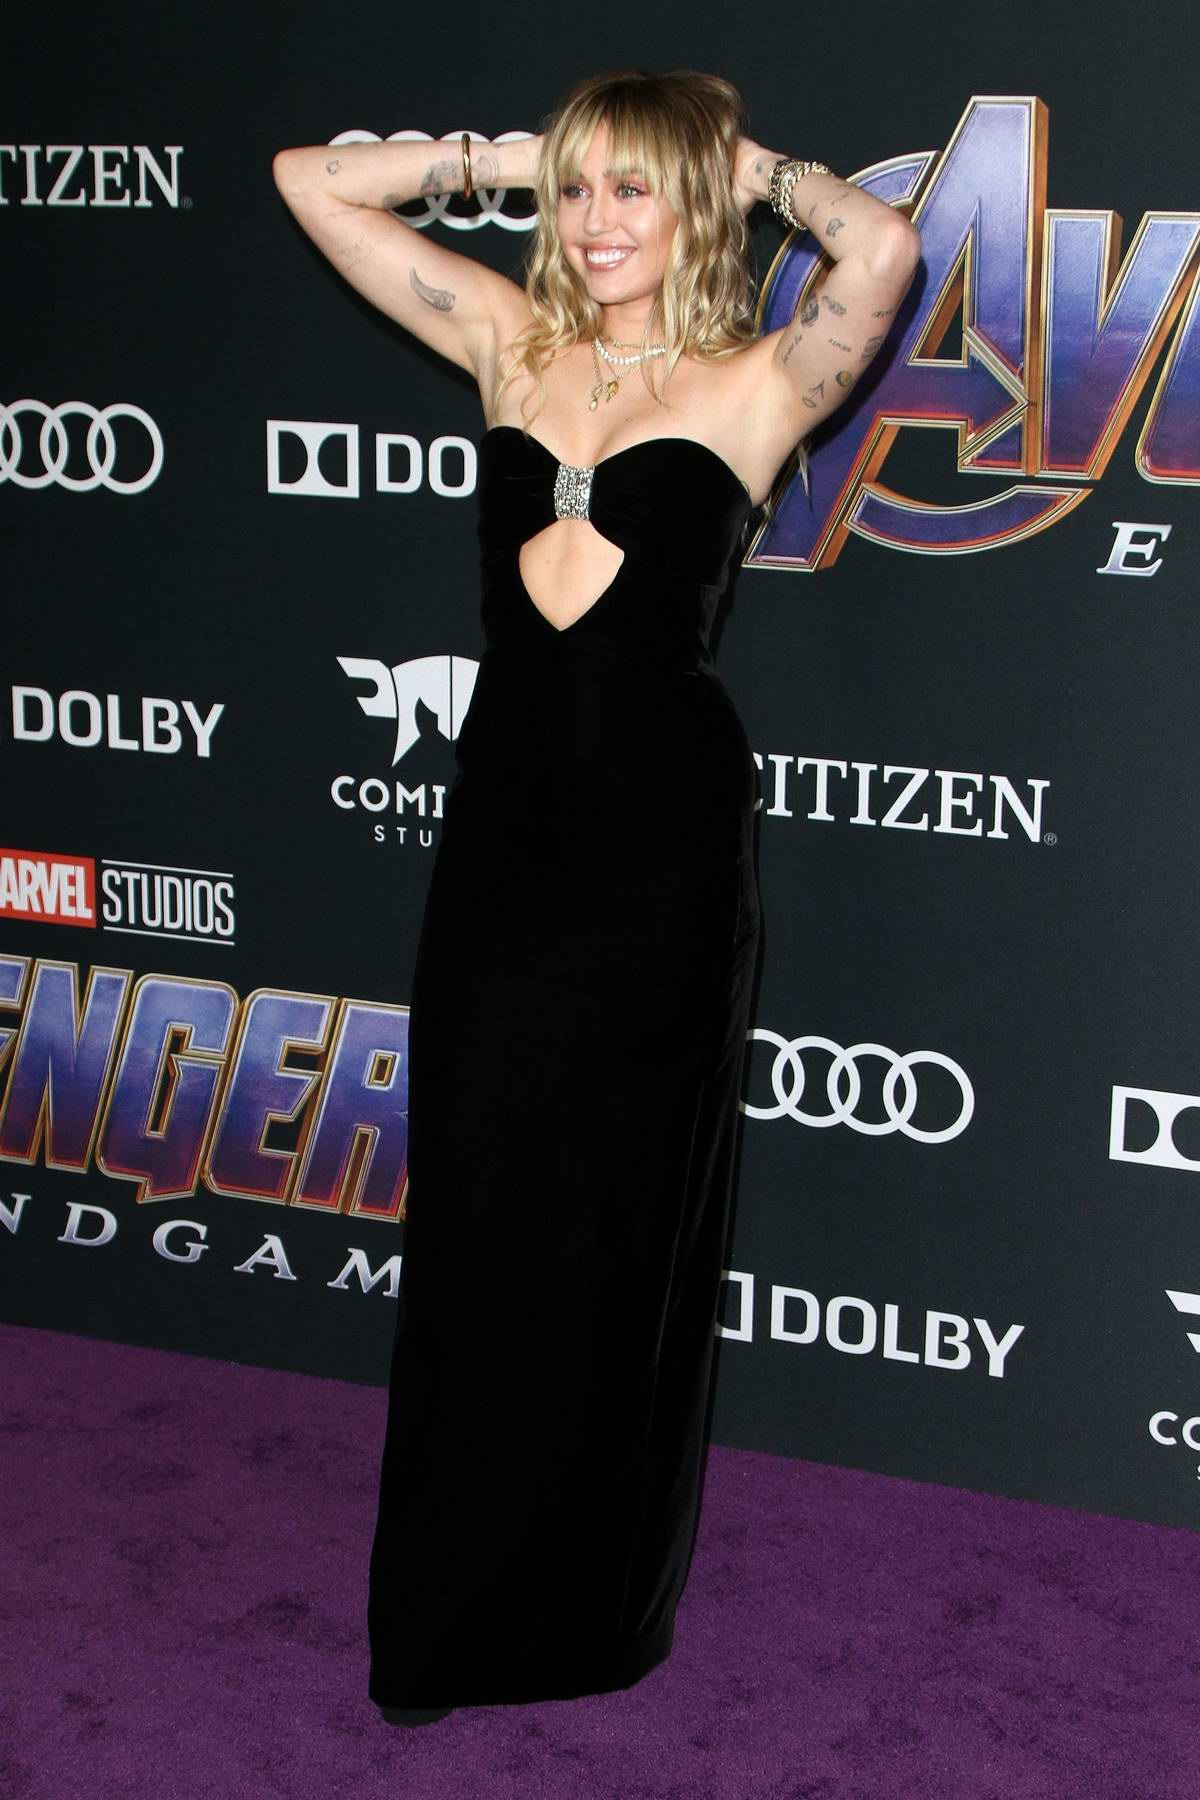 Miley Cyrus attends the World Premiere of 'Avengers: Endgame' at the LA Convention Center in Los Angeles